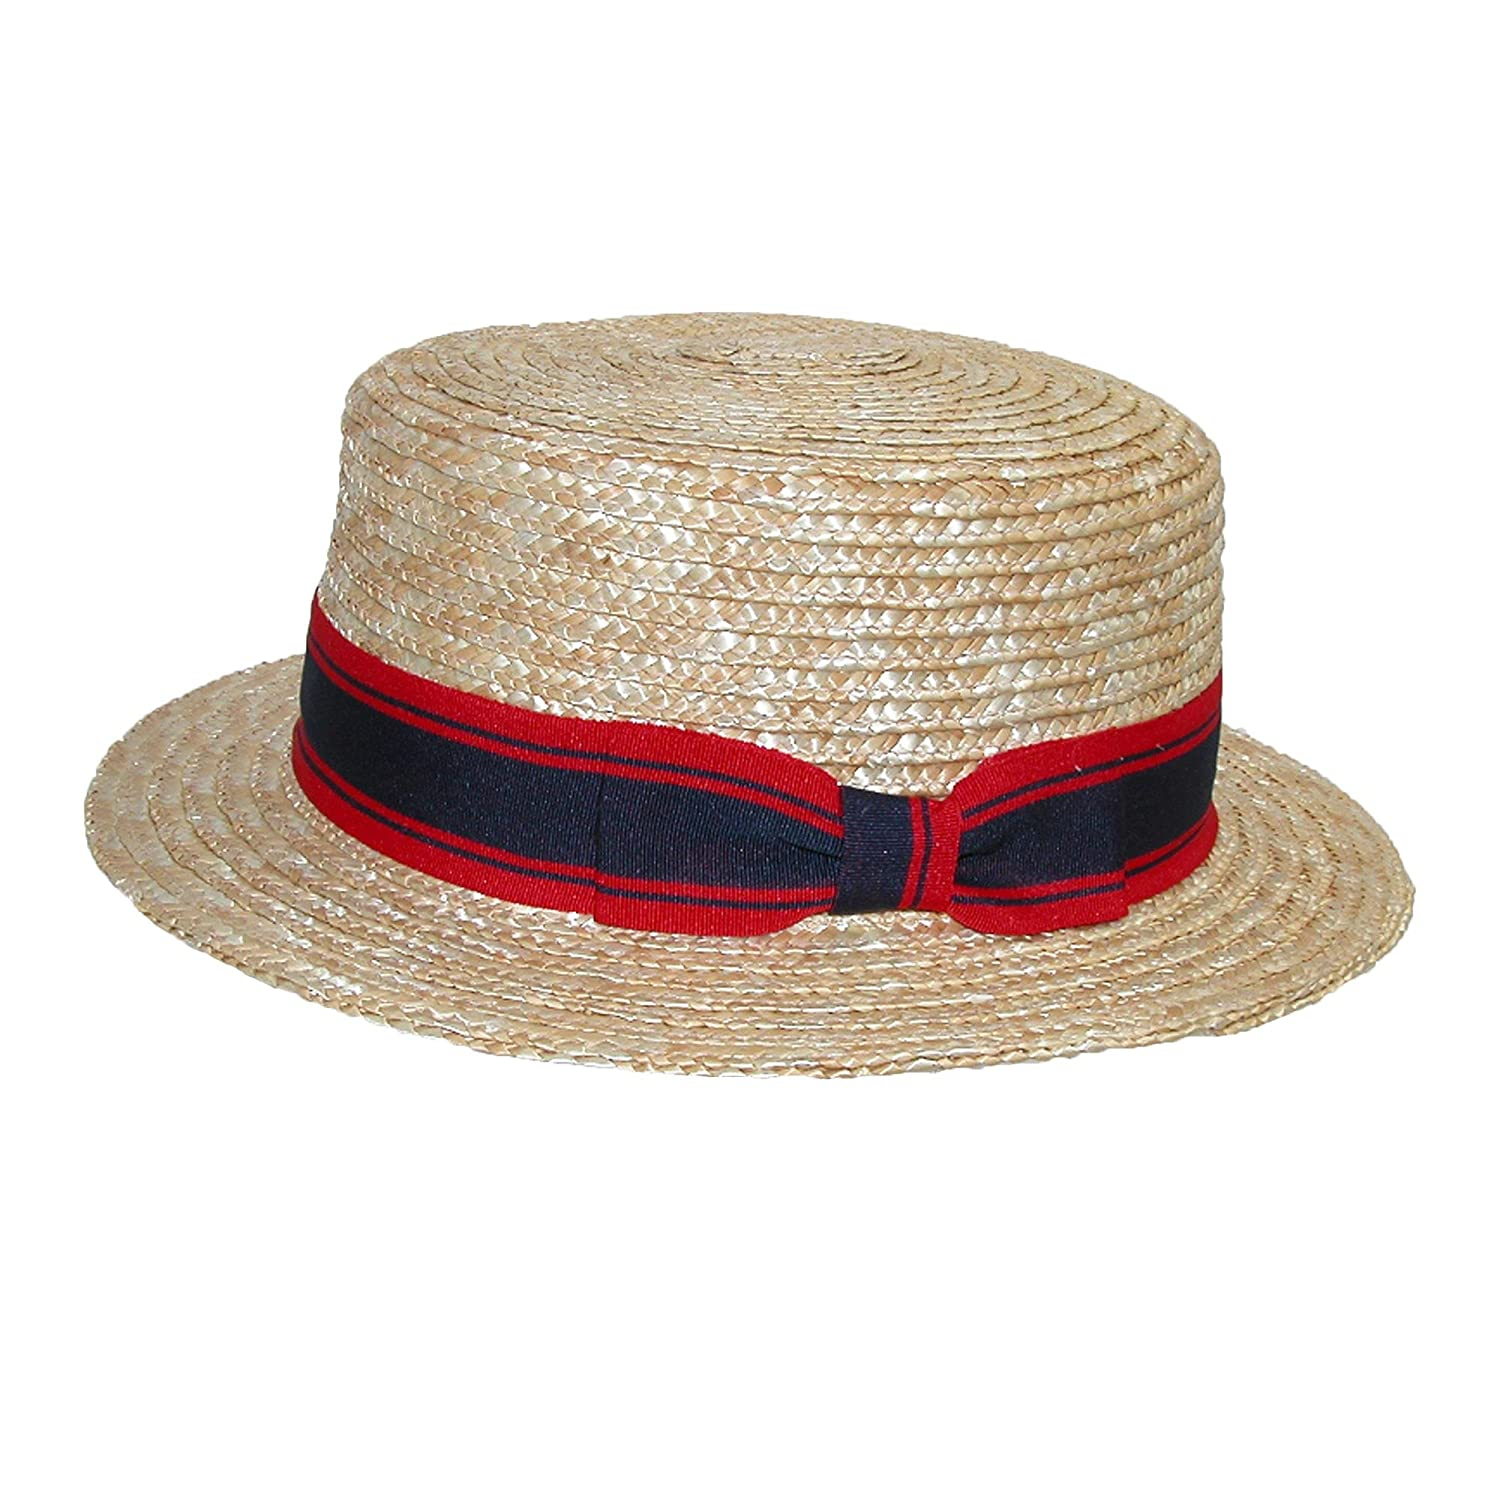 Jeanne Simmons Straw 2 Inch Brim Grosgrain Band Boater Hat Natural